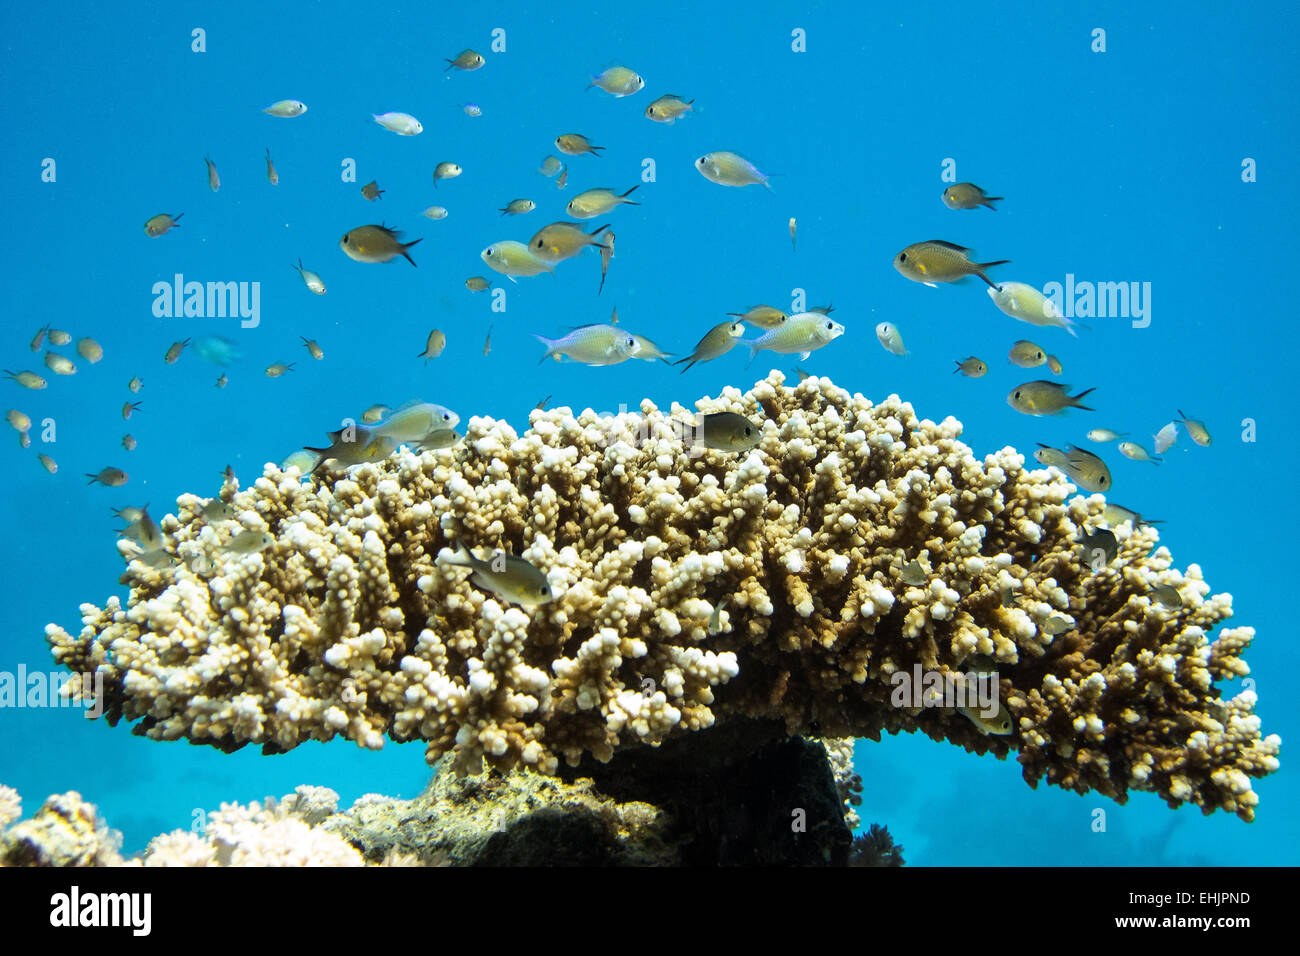 Coral reef Photo Stock